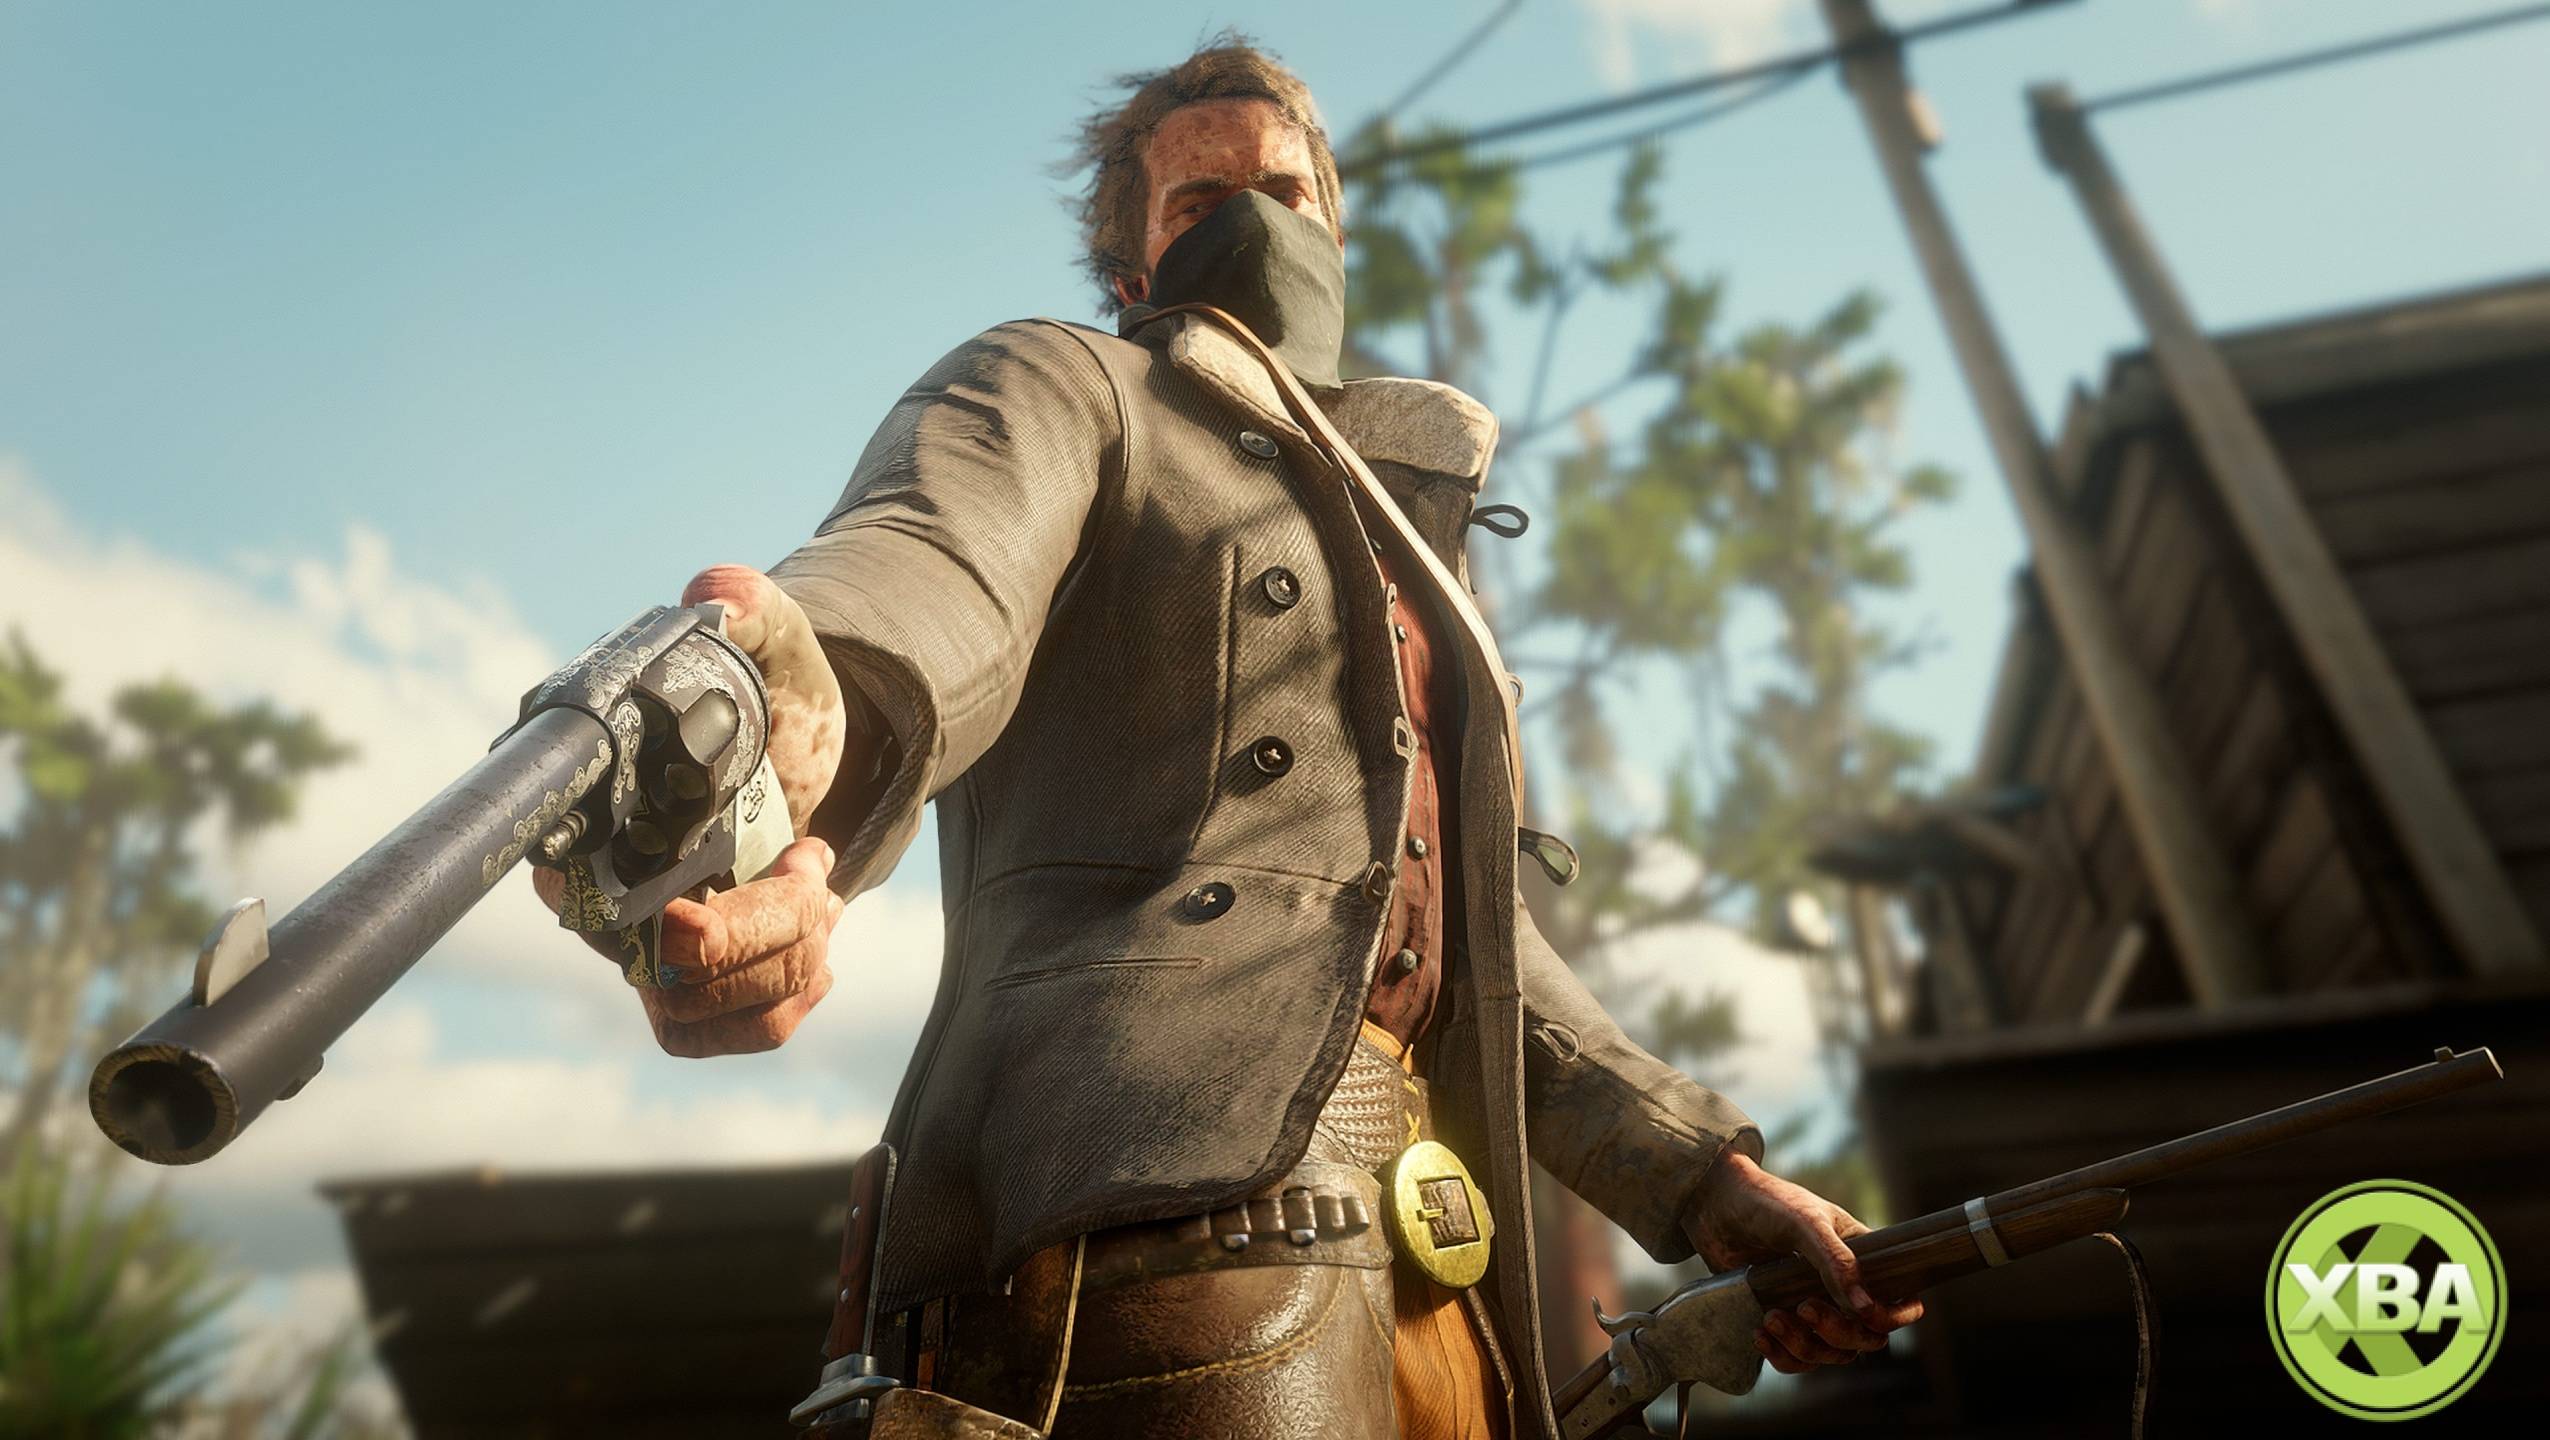 Red Dead Redemption 2 has a massive lineup of weapons